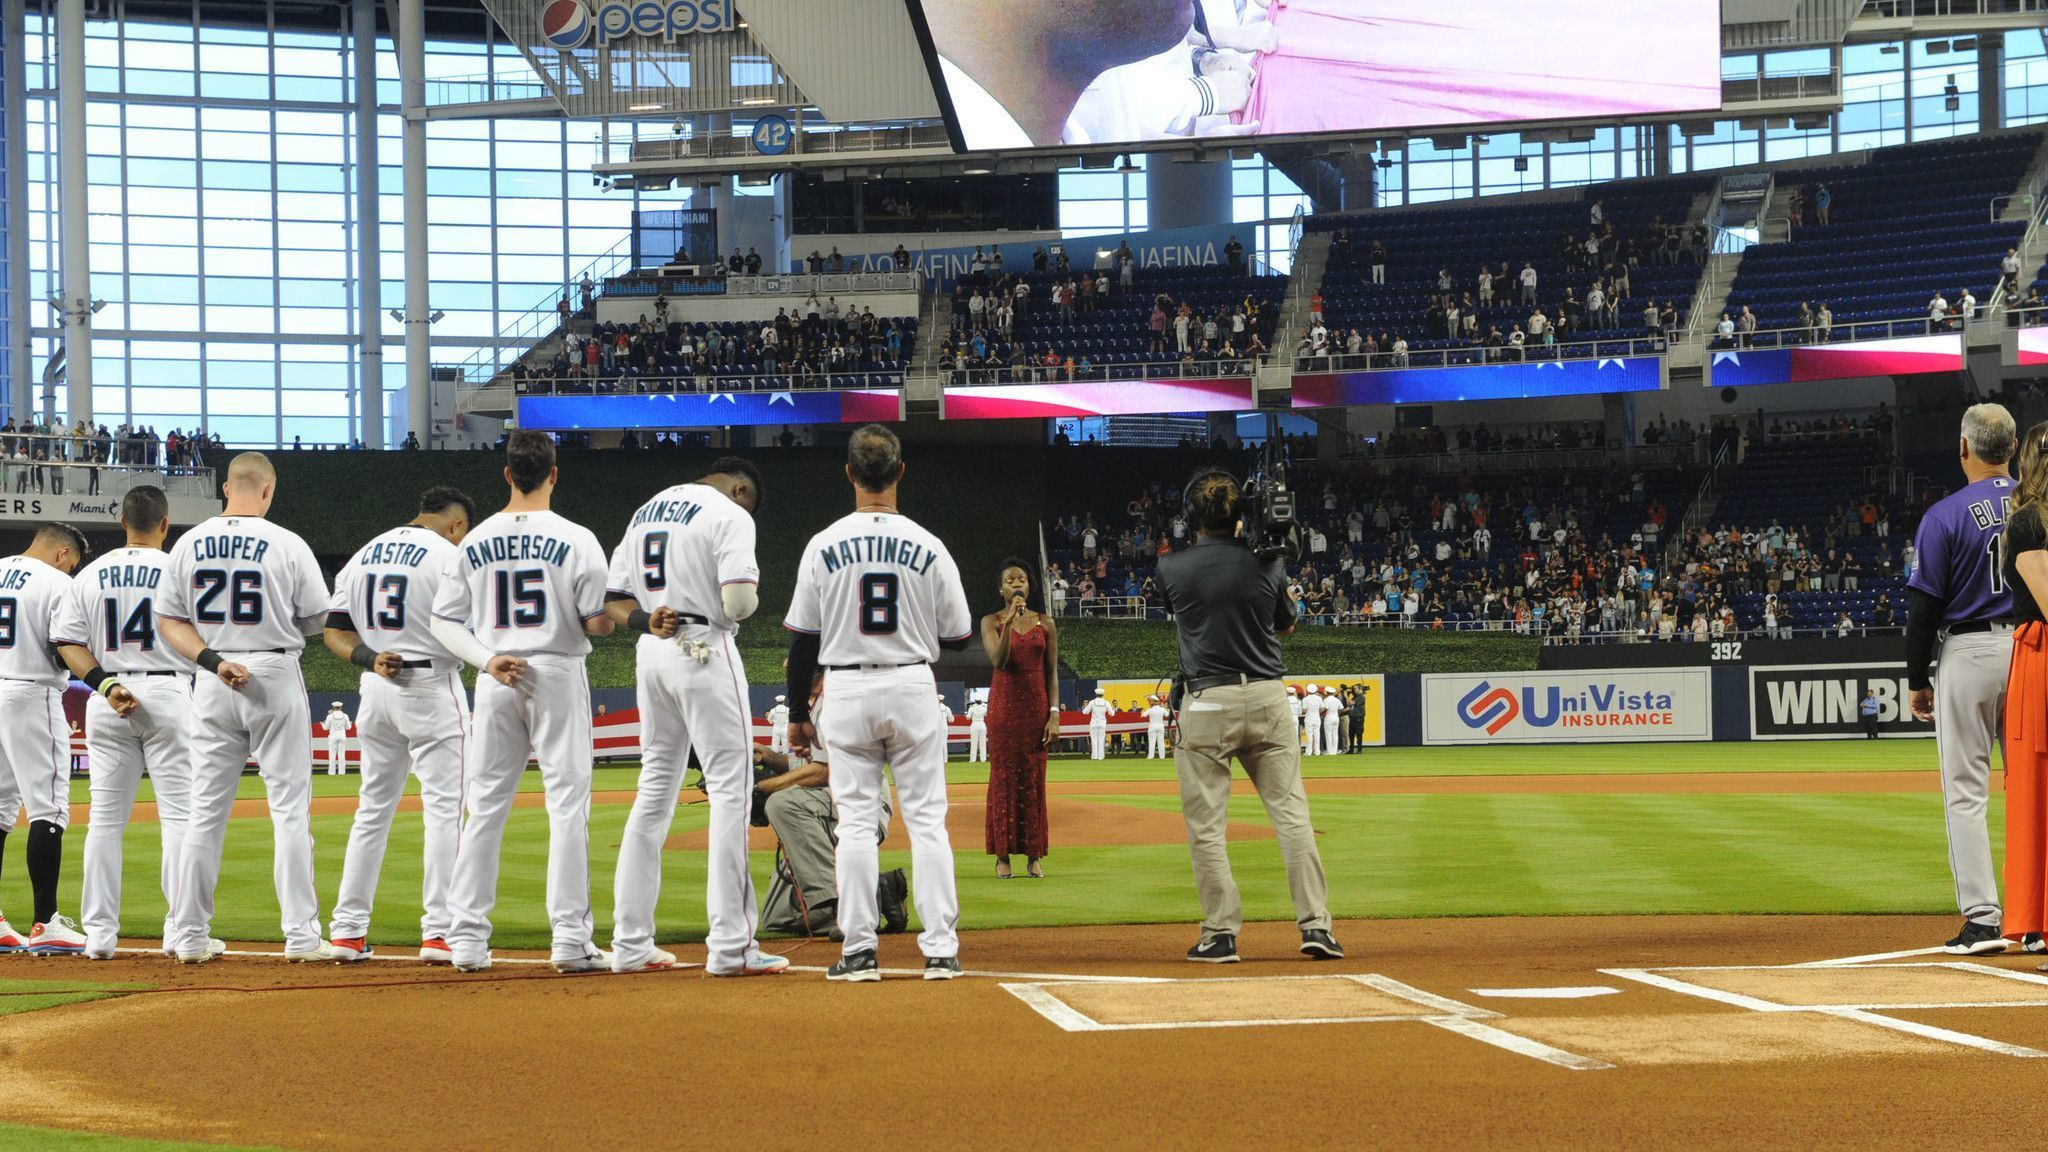 South Florida singers (and one TV anchor) make their debut for Miami Marlins opening week